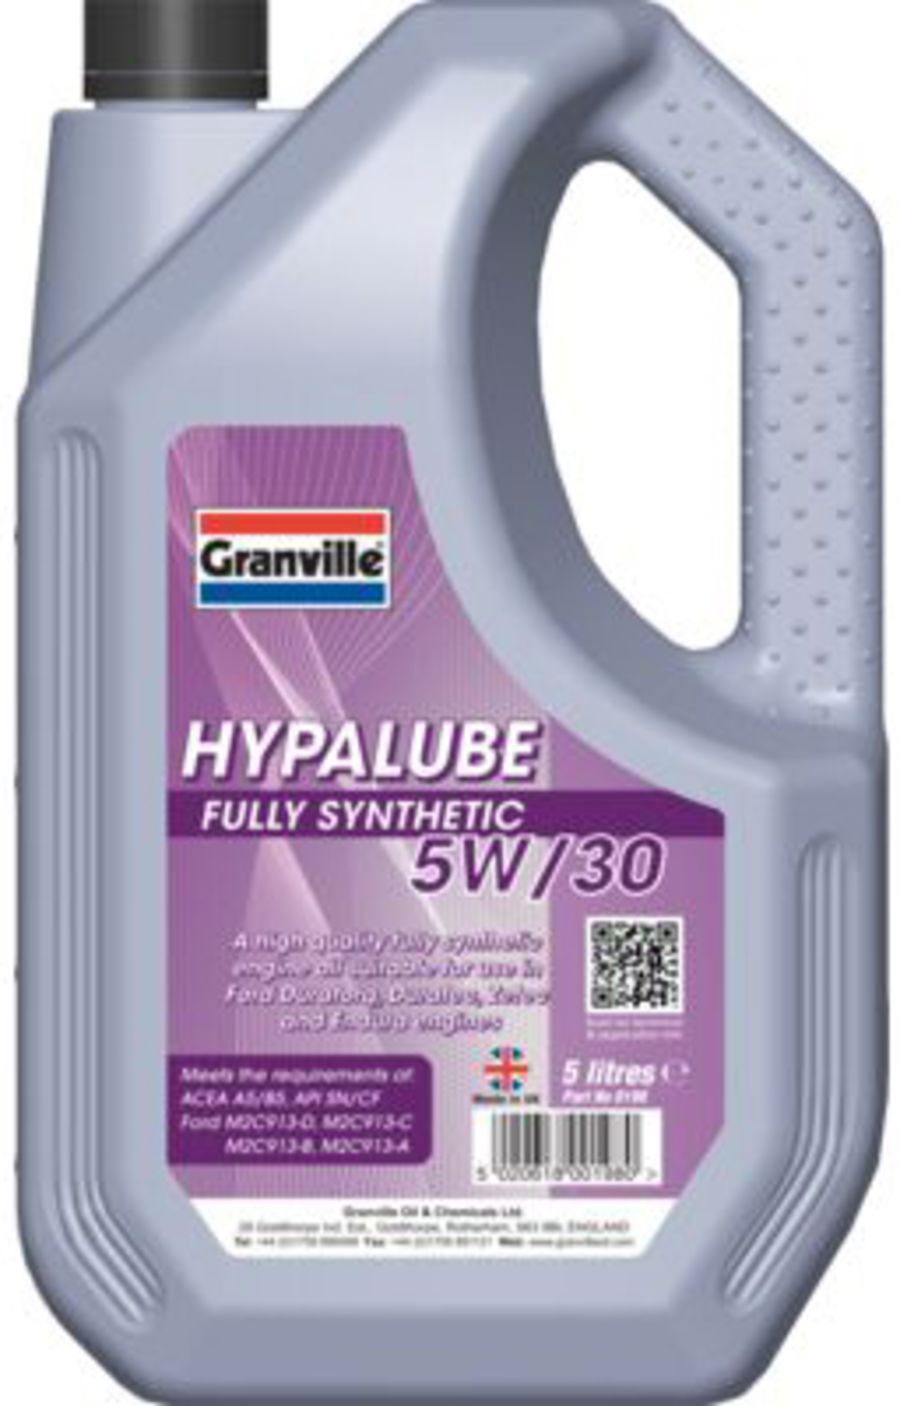 Hypalube Fully Synthetic Oil 5W/30